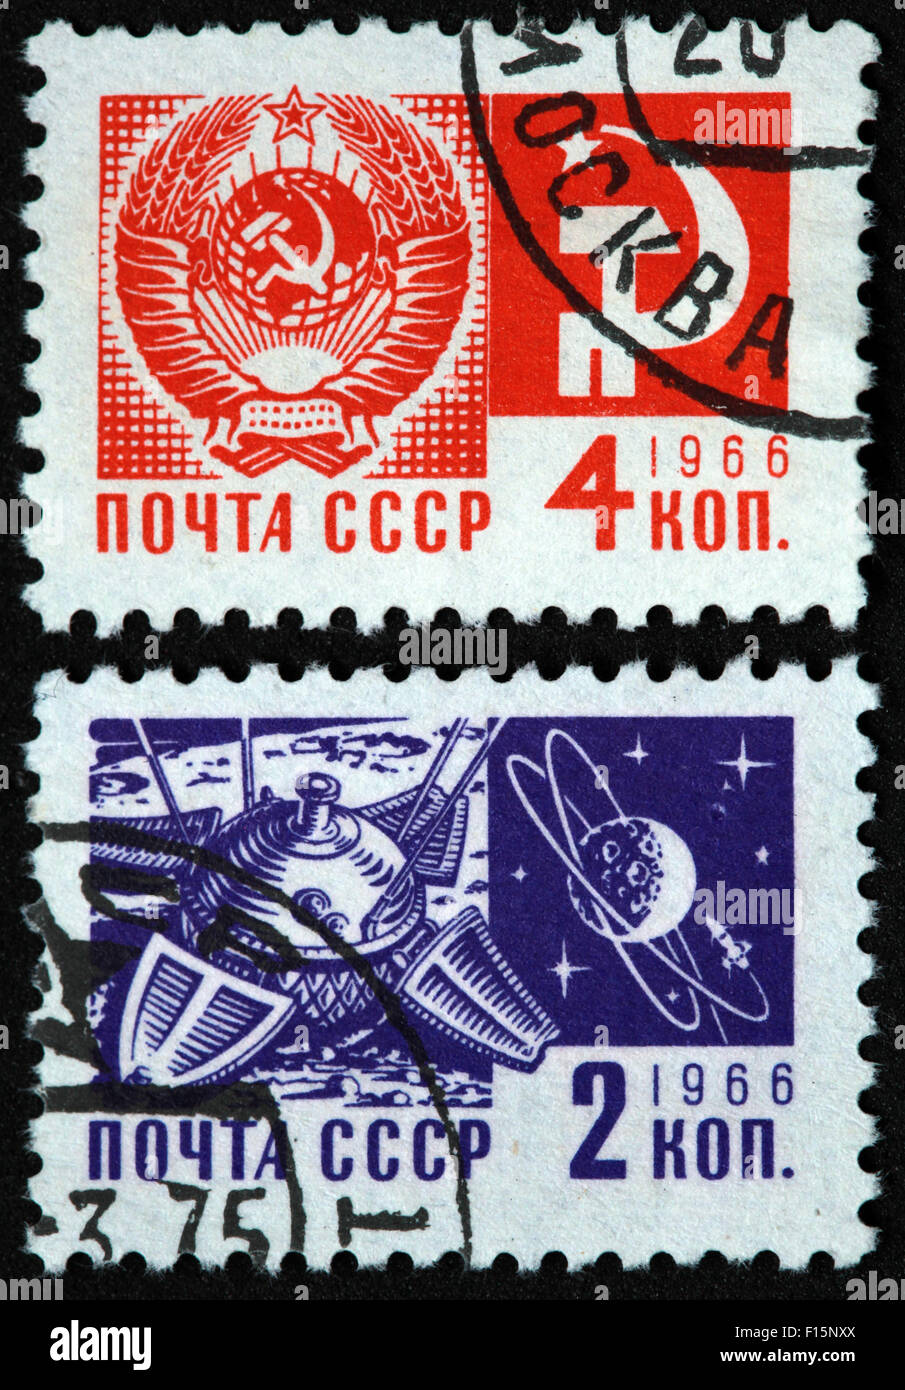 International Post,star,Used and Postmarked,Used,and,postmarked,perforated,stamp,Used,and,postmarked,Stamp,post,posting,mail,hobby,perforation,mark,postage,stamp,print,stamp,cancelled,stamp,payment,correspondence,postman,collection,collector,phila,USSR,Soviet,Bloc,Block,East,Eastern,Europe,Russia,Yuri Gagarin,Moscow,Russian,Gotonysmith,post,posting,mail,hobby,perforation,mark,postage,stamp,print,stamp,cancelled,canceled,stamp,payment,correspondence,postman,collection,collector,philately,philatelist,letter,price,history,retro,Australian,Vintage,delivery,date,relationship,communication,Oz,Australia,DownUnder,classic,rare,unique,Austrailian,financial,investment,invest,value,British,empire,nation,canceled,printed,on,black,background,close-up,closeup,close,up,sent,send,philately,mailing,shipping,postoffice,office,isolated,circa,special,colour,color,postmarked,marked,airmail,aged,antique,retro,cutting,historic,old,stamps,collection,stamp collection,album,Timbre,Sello,Stempel,Selo,Buy Pictures of,Buy Images Of,Down Under,Black background